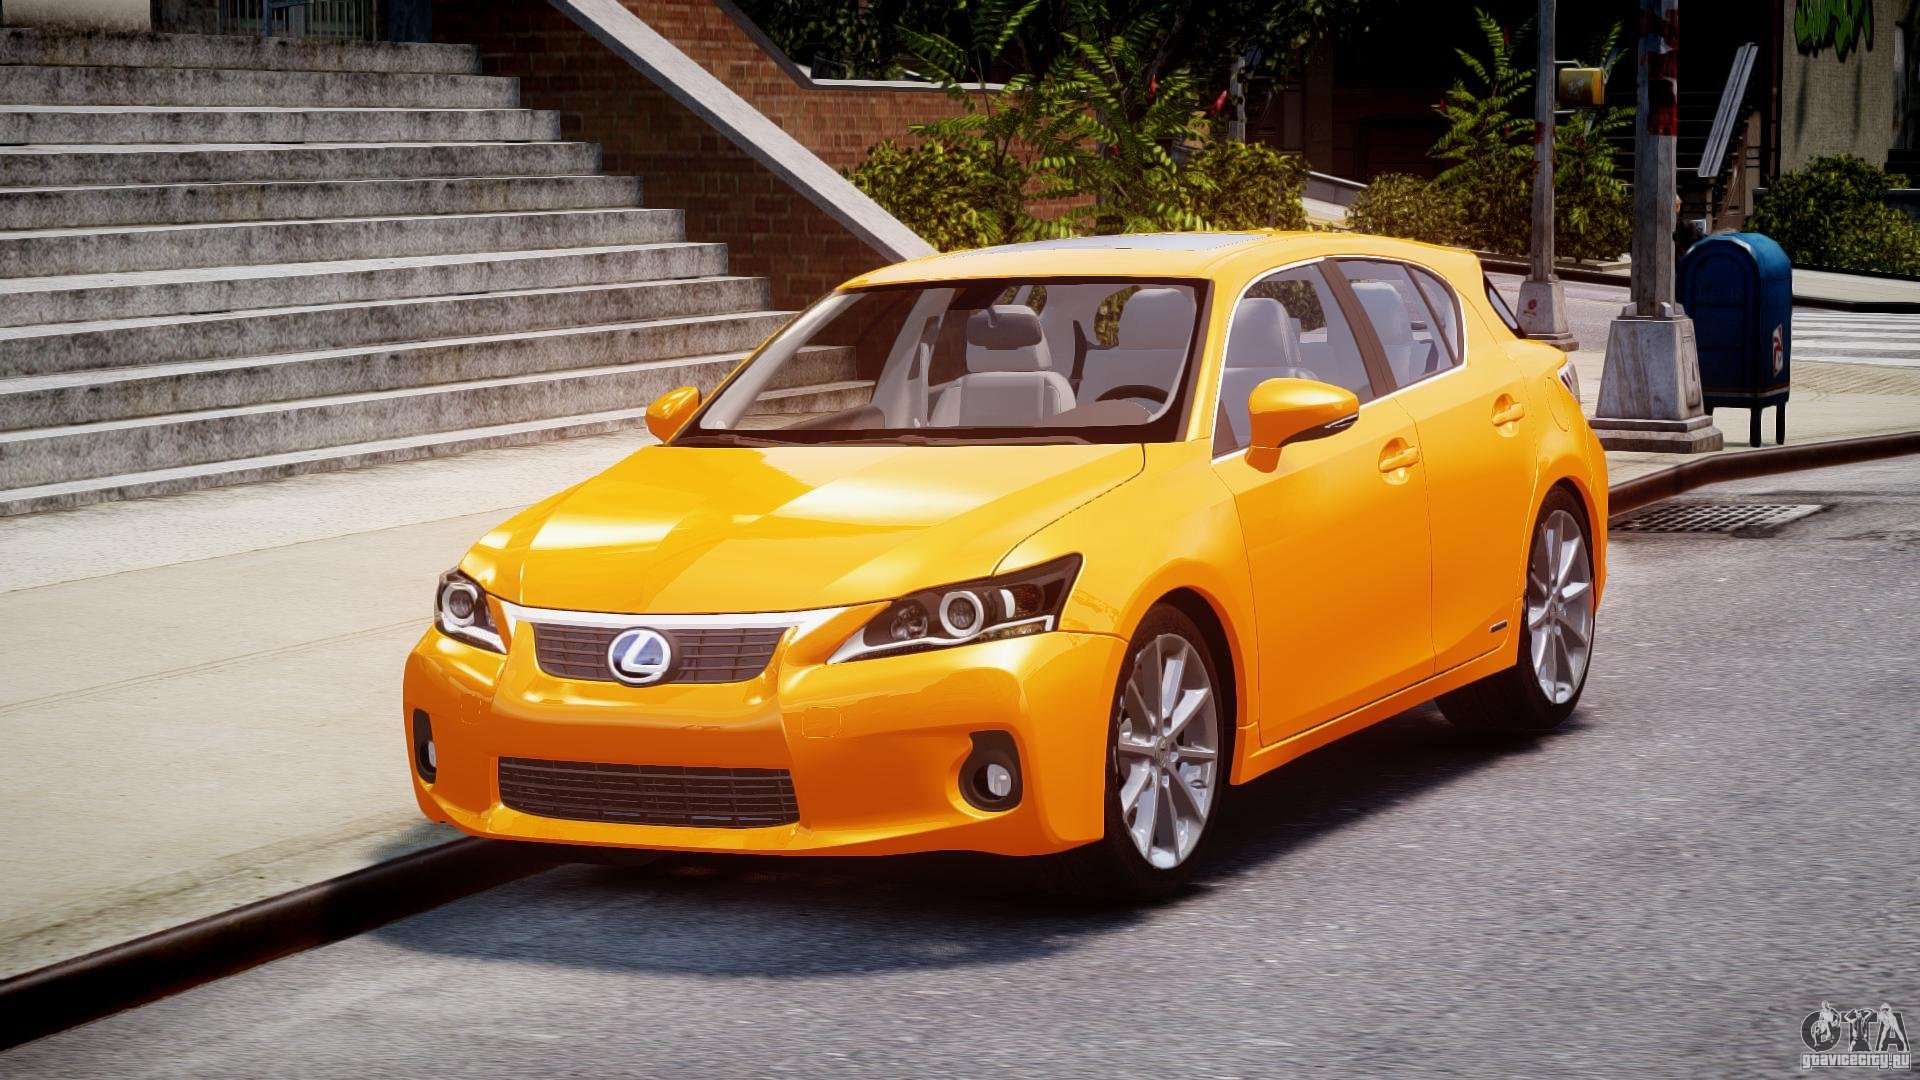 11 Lexus Ct200h 2011 Lexus Ct200h Pictures to pin on Pinterest Lexus Breda